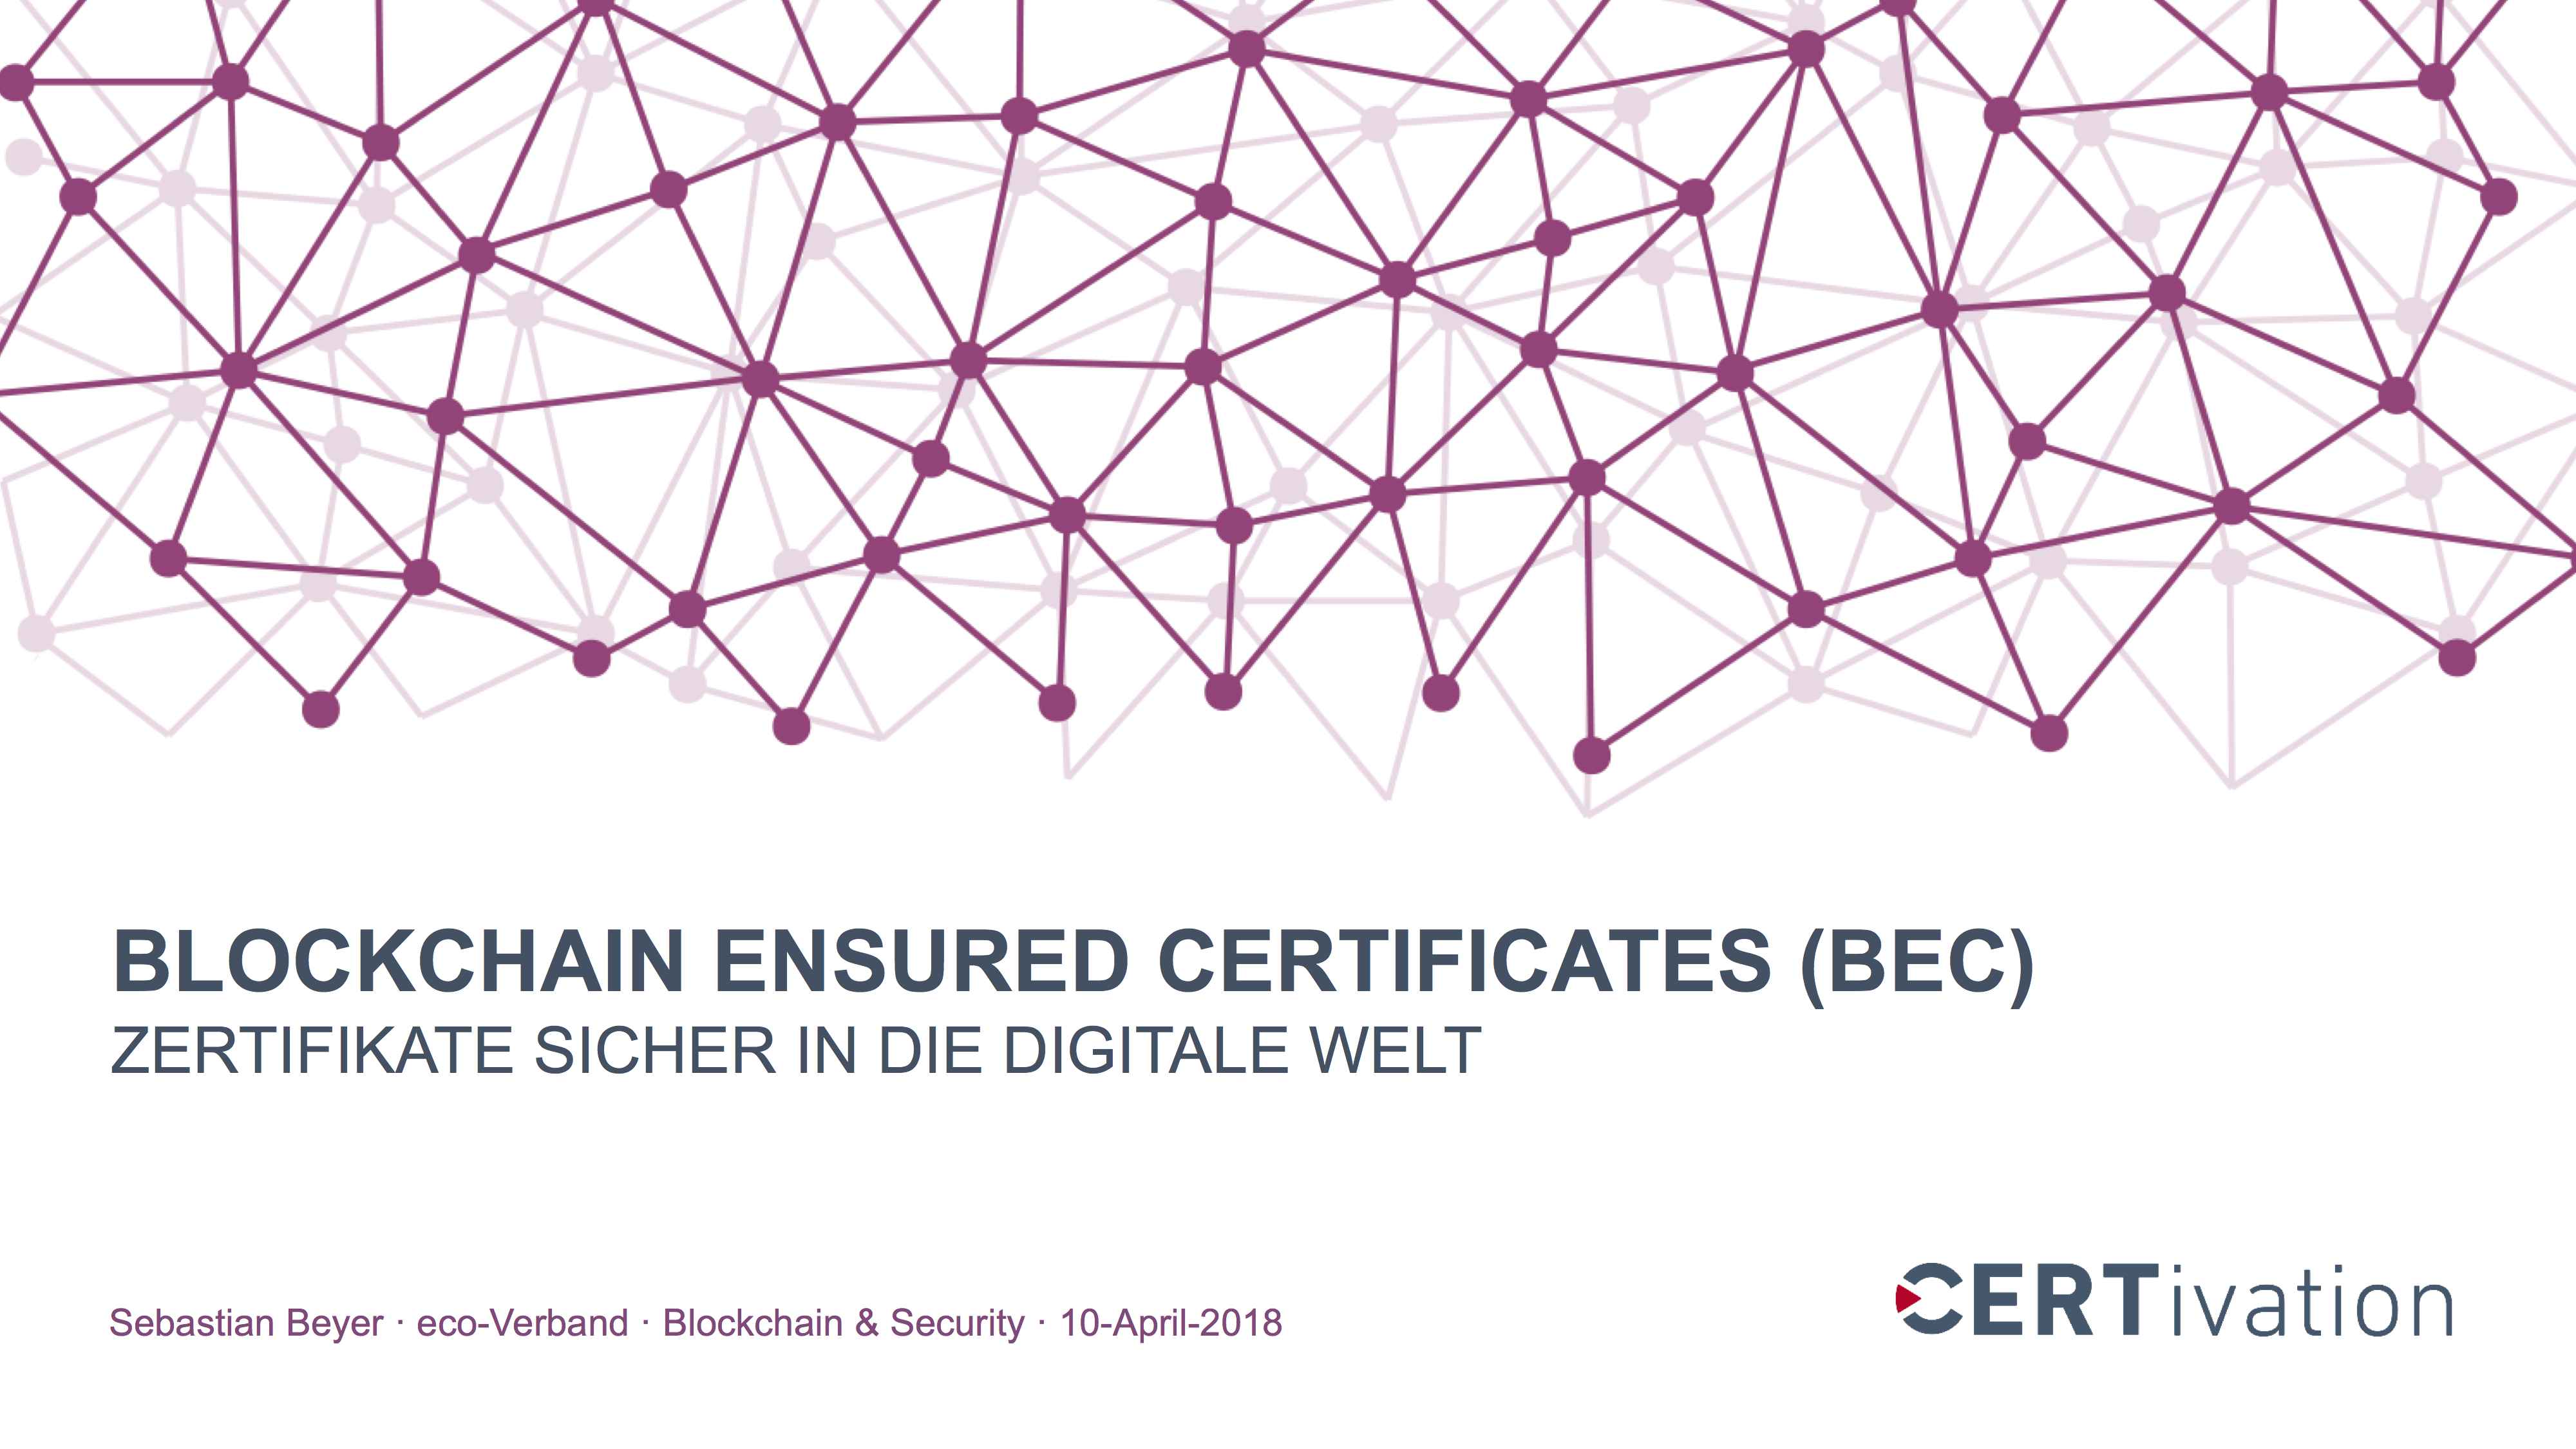 Präsentation: Blockchain Ensured Certificates – Zertifikate sicher in die digitale Welt